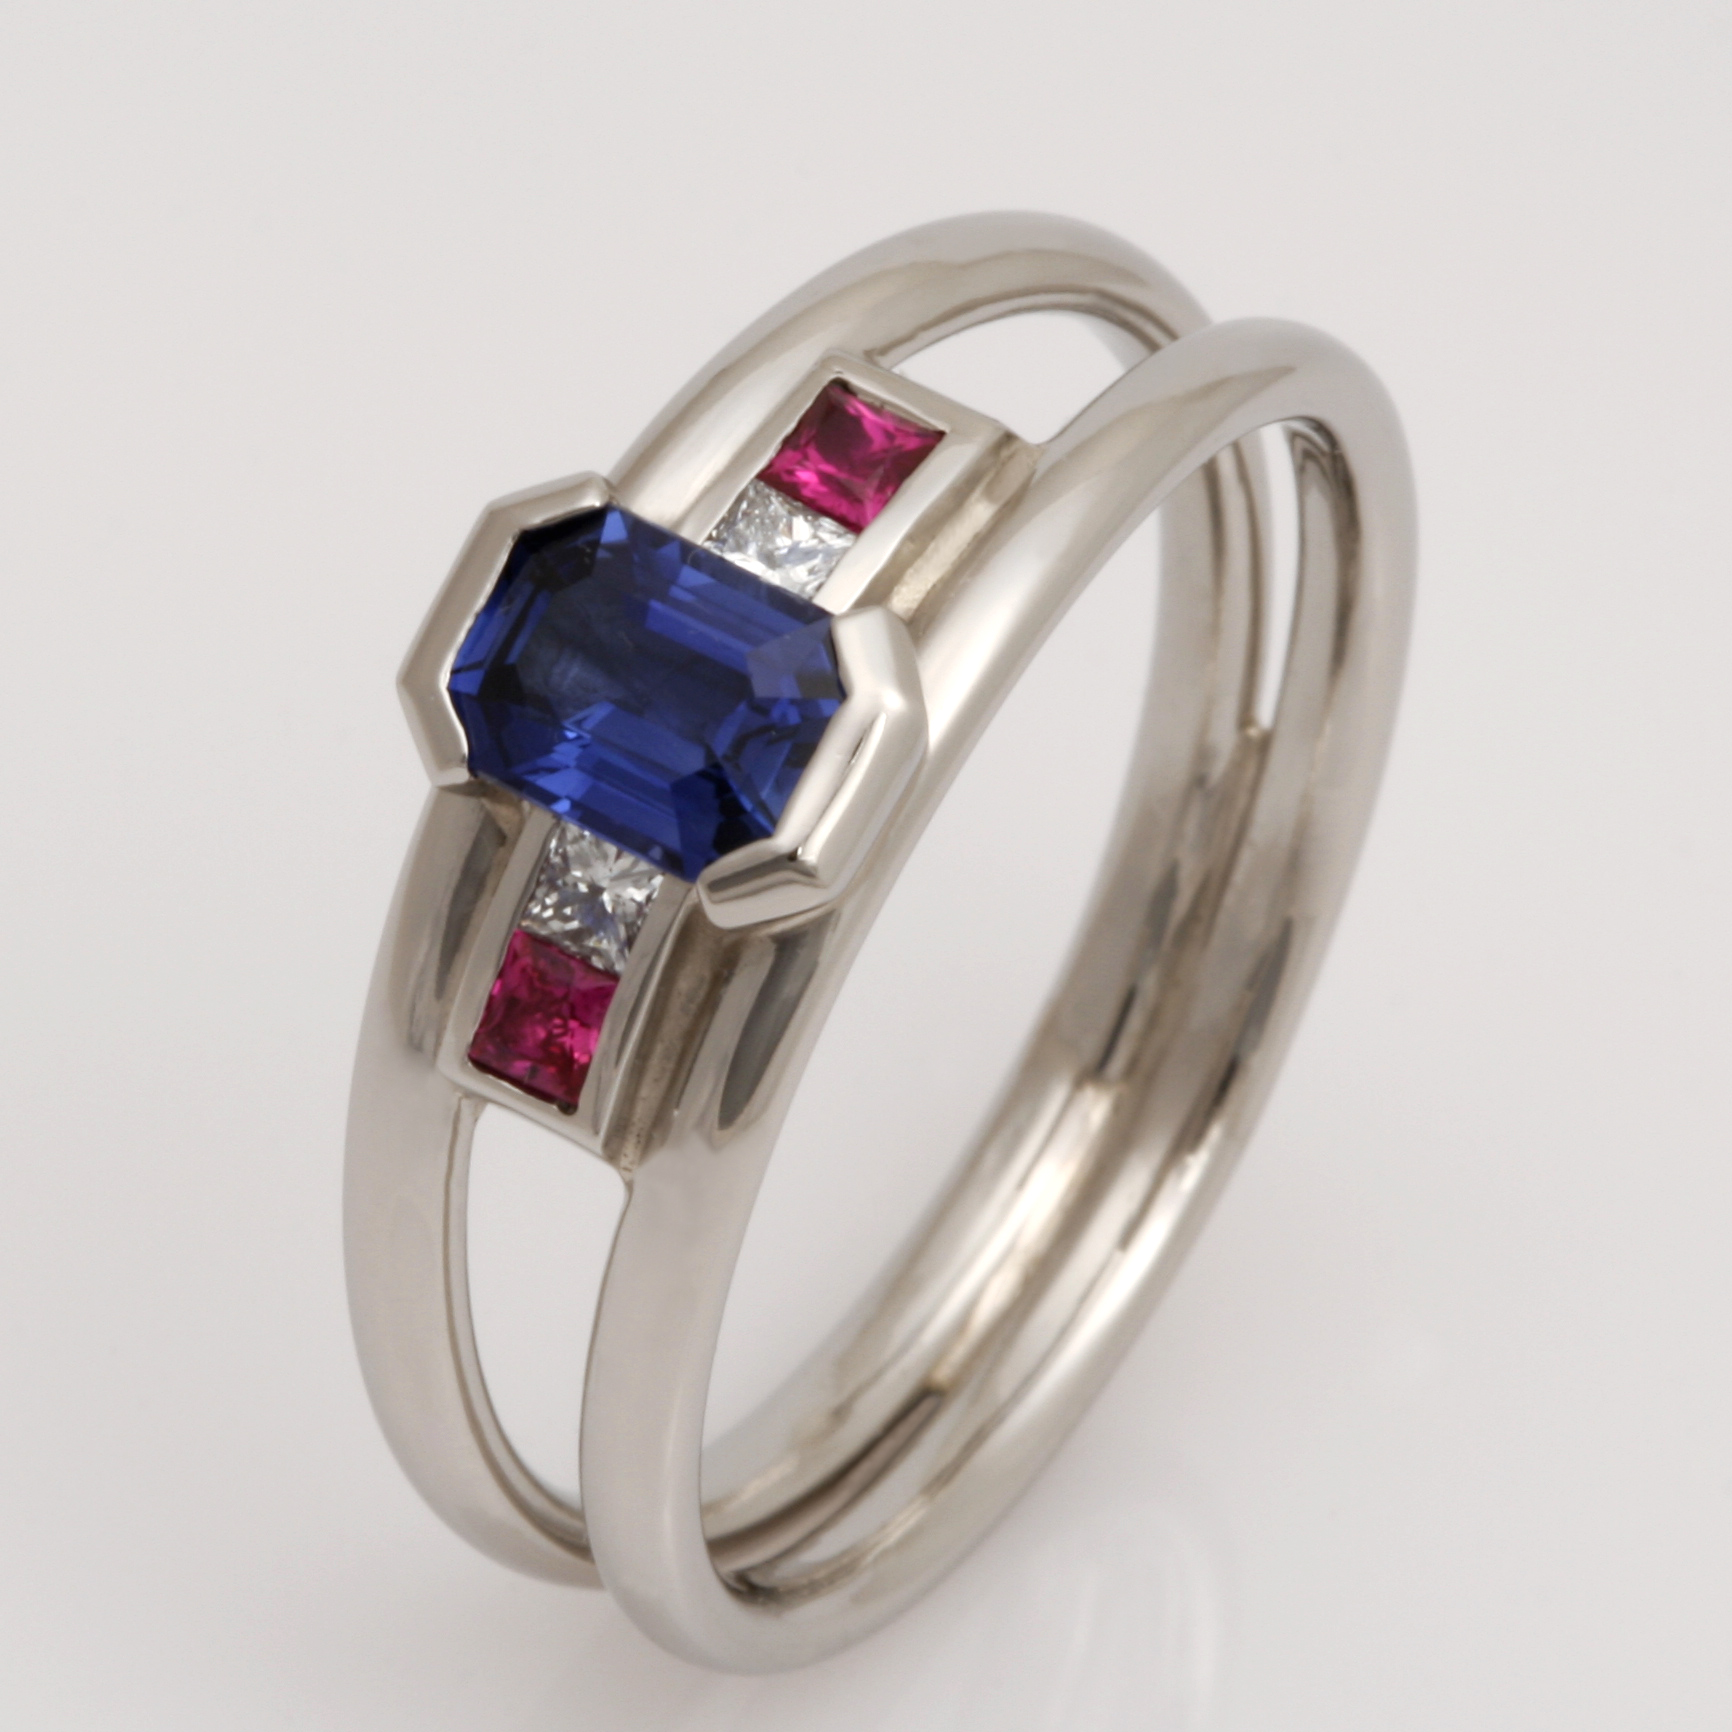 Handmade palladium, Ceylon sapphire, ruby and diamond engagement ring